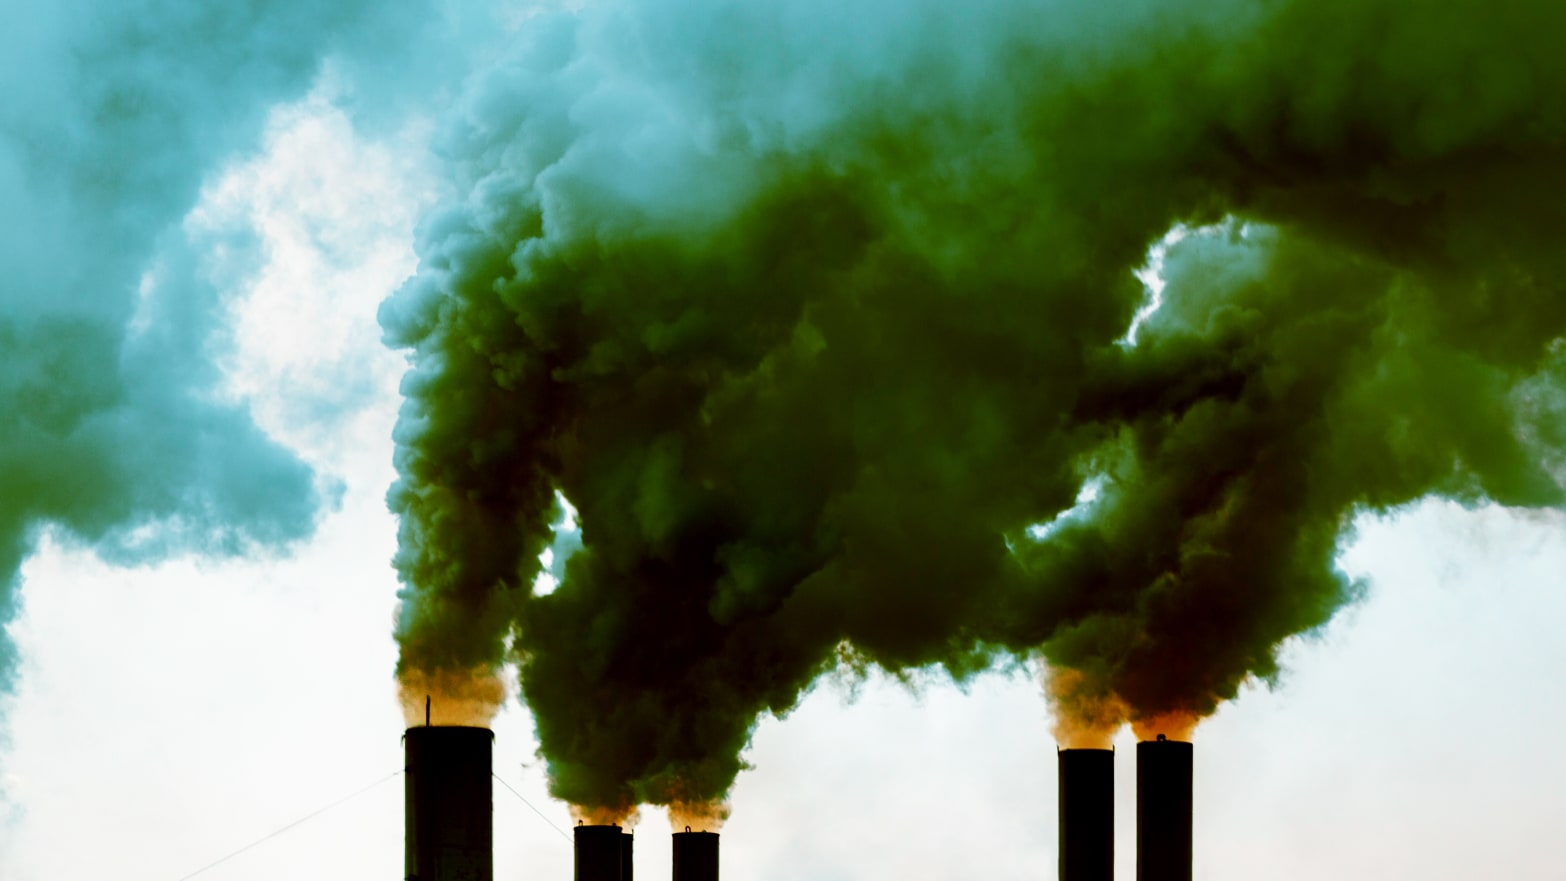 image of plumes of smoke coming out of factory carbon dioxide emissions pollution co2 trump gina loudon fake psychologist psychology phd envirowhacked environment